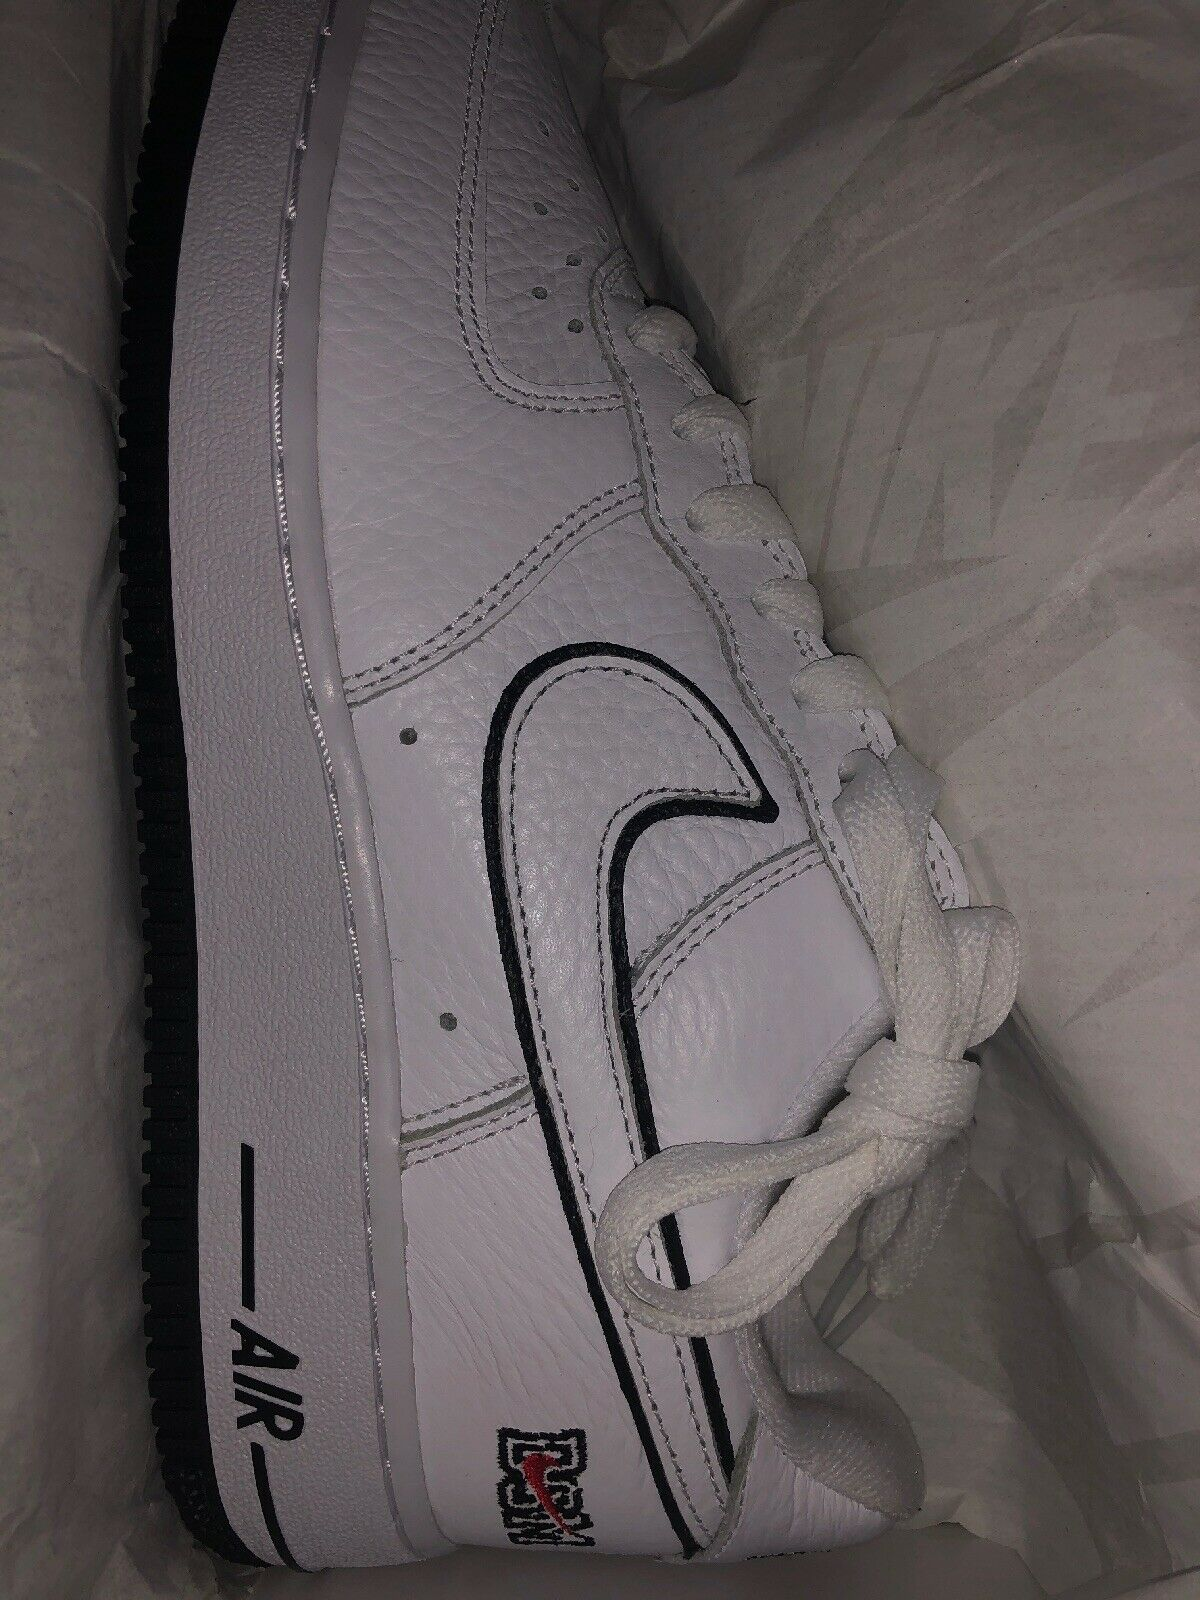 DS size 6.5 Nike Air Force 1 Low Retro DSM White NYC Anniversary CONFIRMED